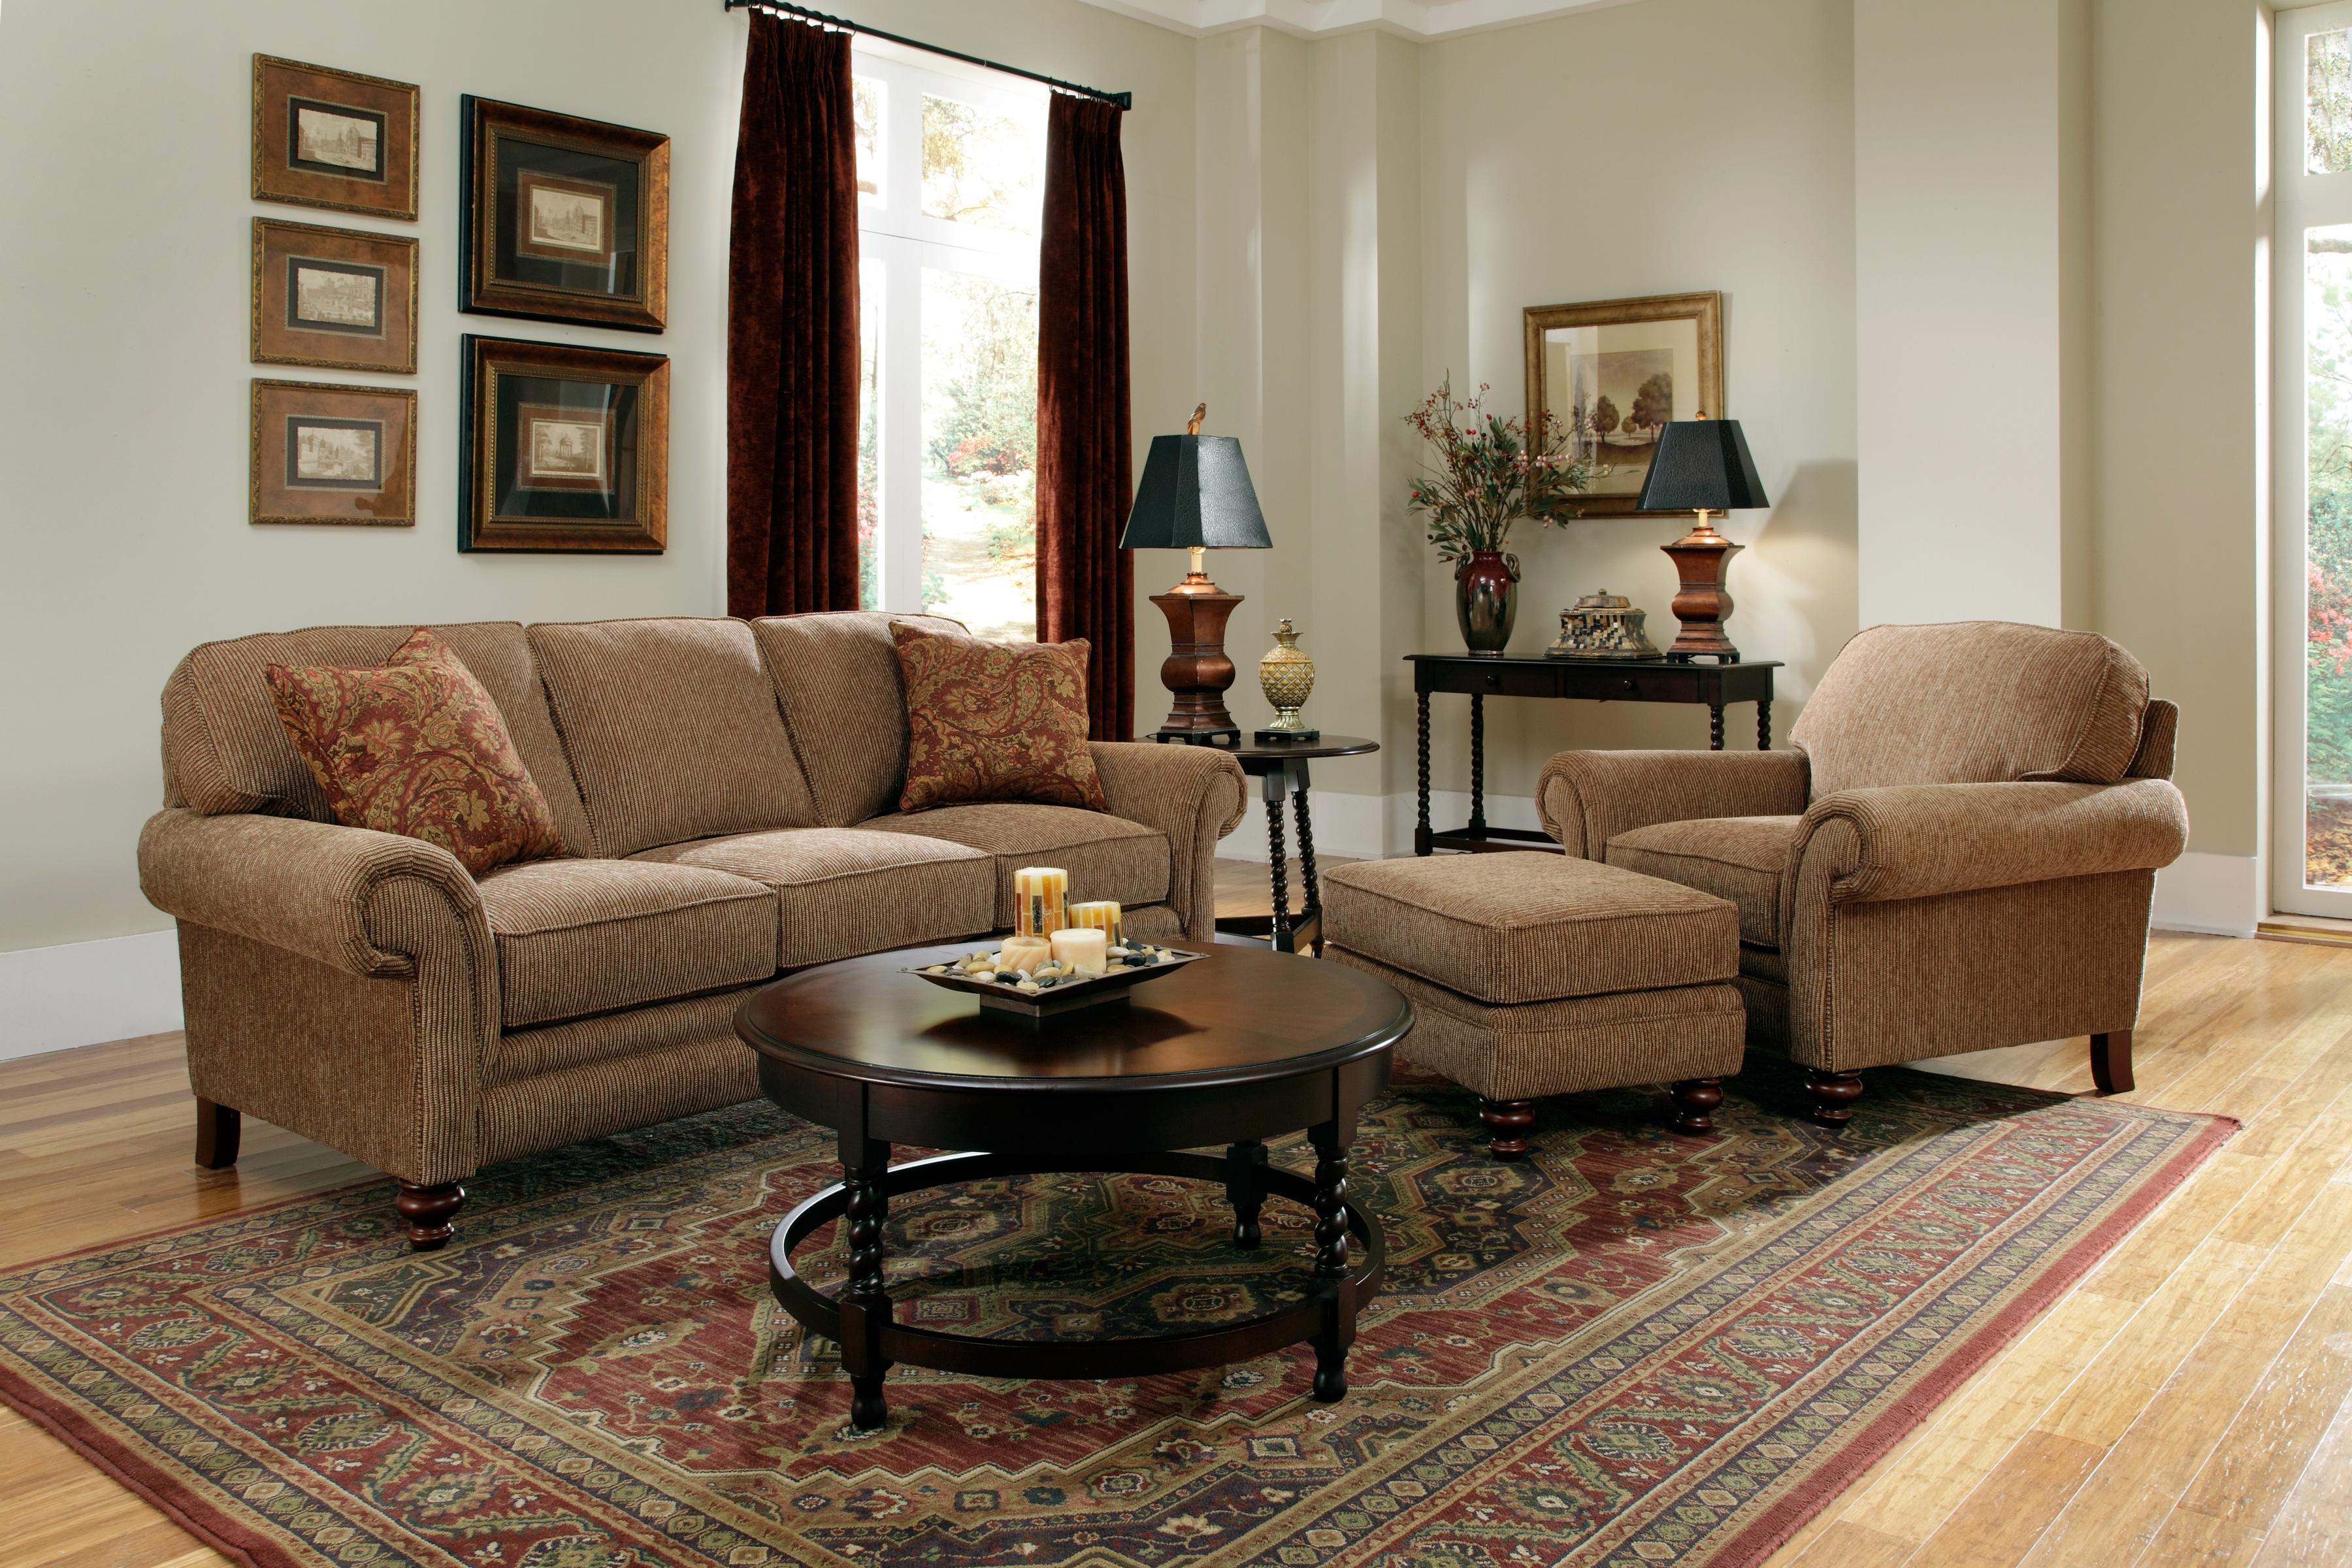 awesome tan sofa set with round wooden table by broyhill furniture on floral rug for living room decor ideas